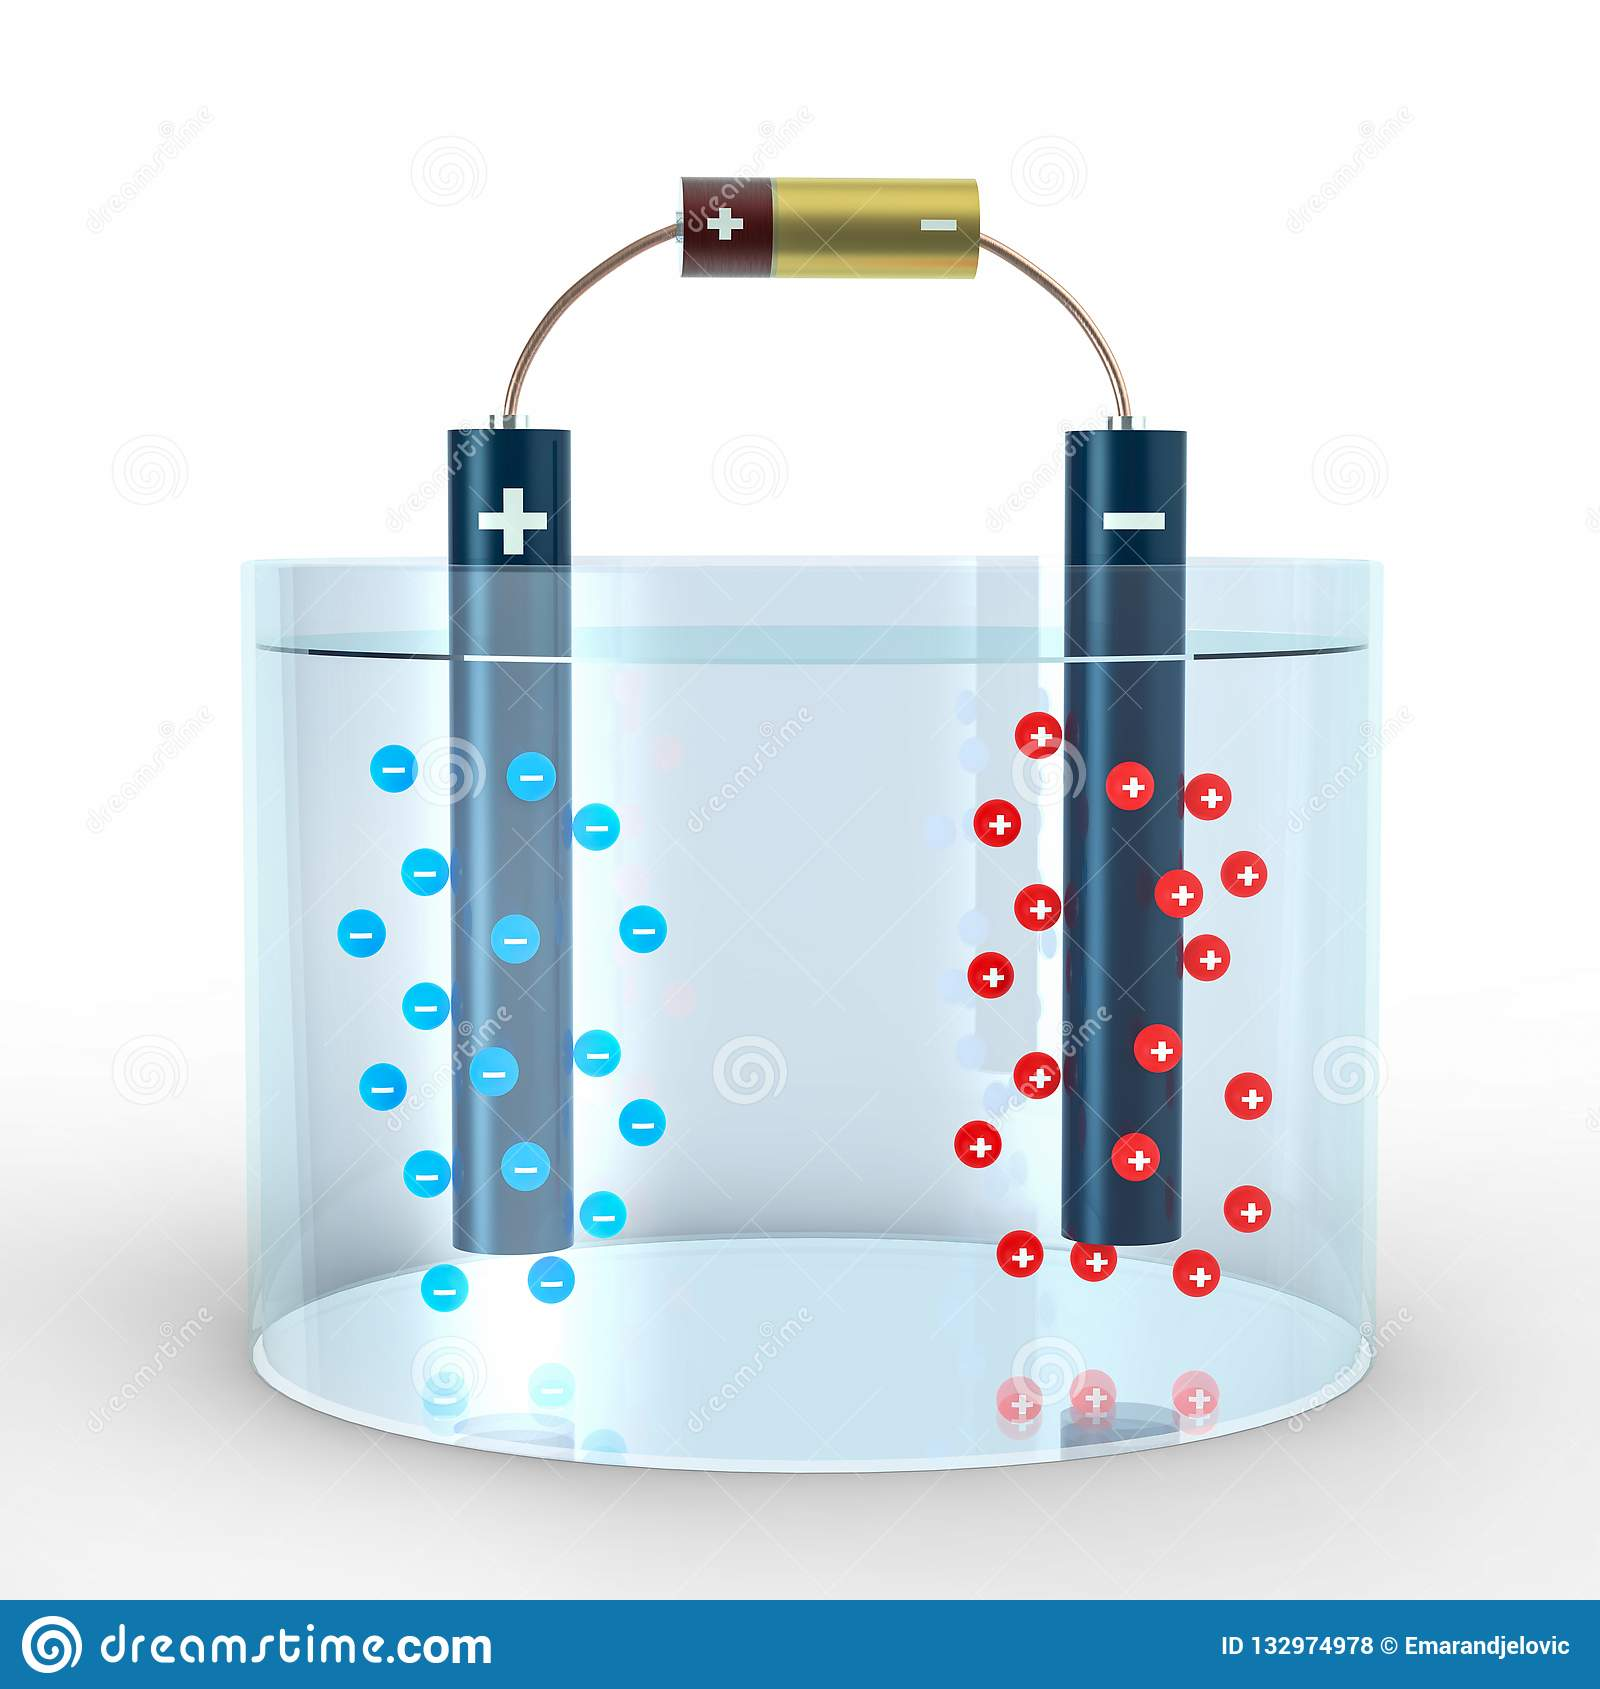 Electrolysis Process Of Water With Anode And Cathode In